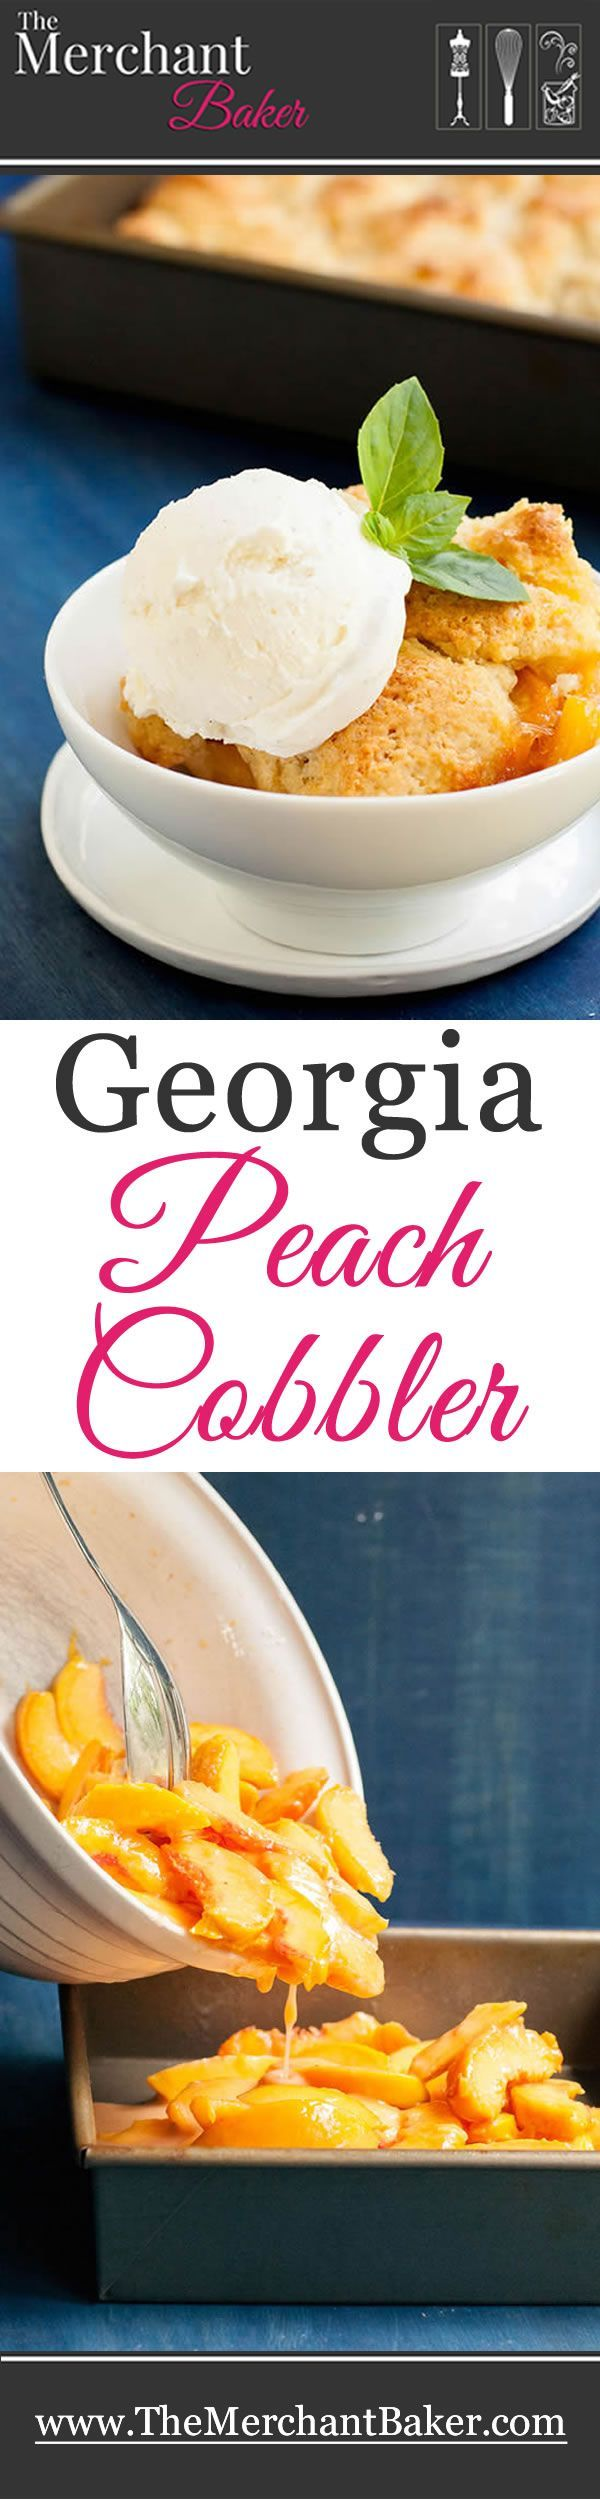 Georgia Peach Cobbler #peachcobblercheesecake